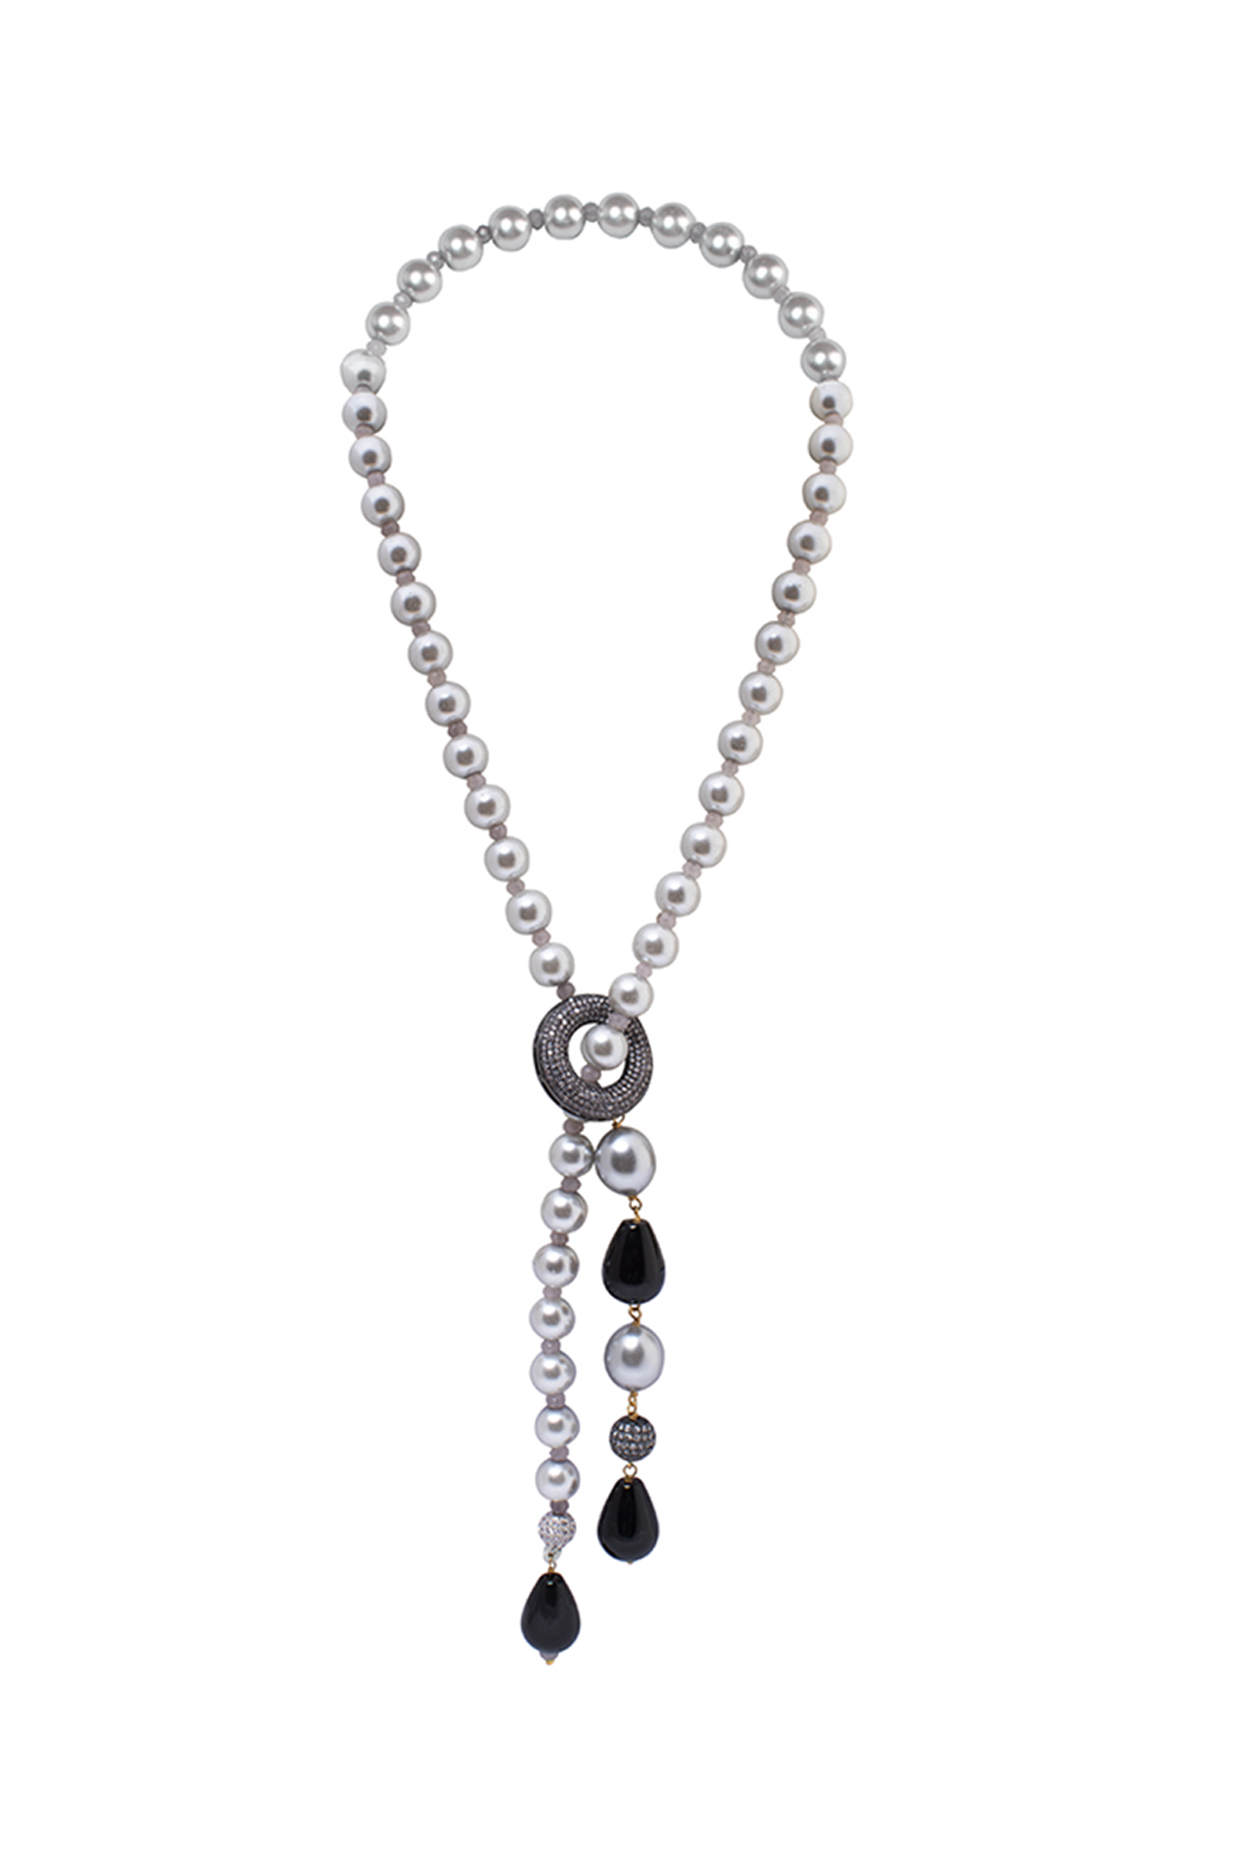 Gold Finish Black Onyx & Pearl Necklace by Joules By Radhika